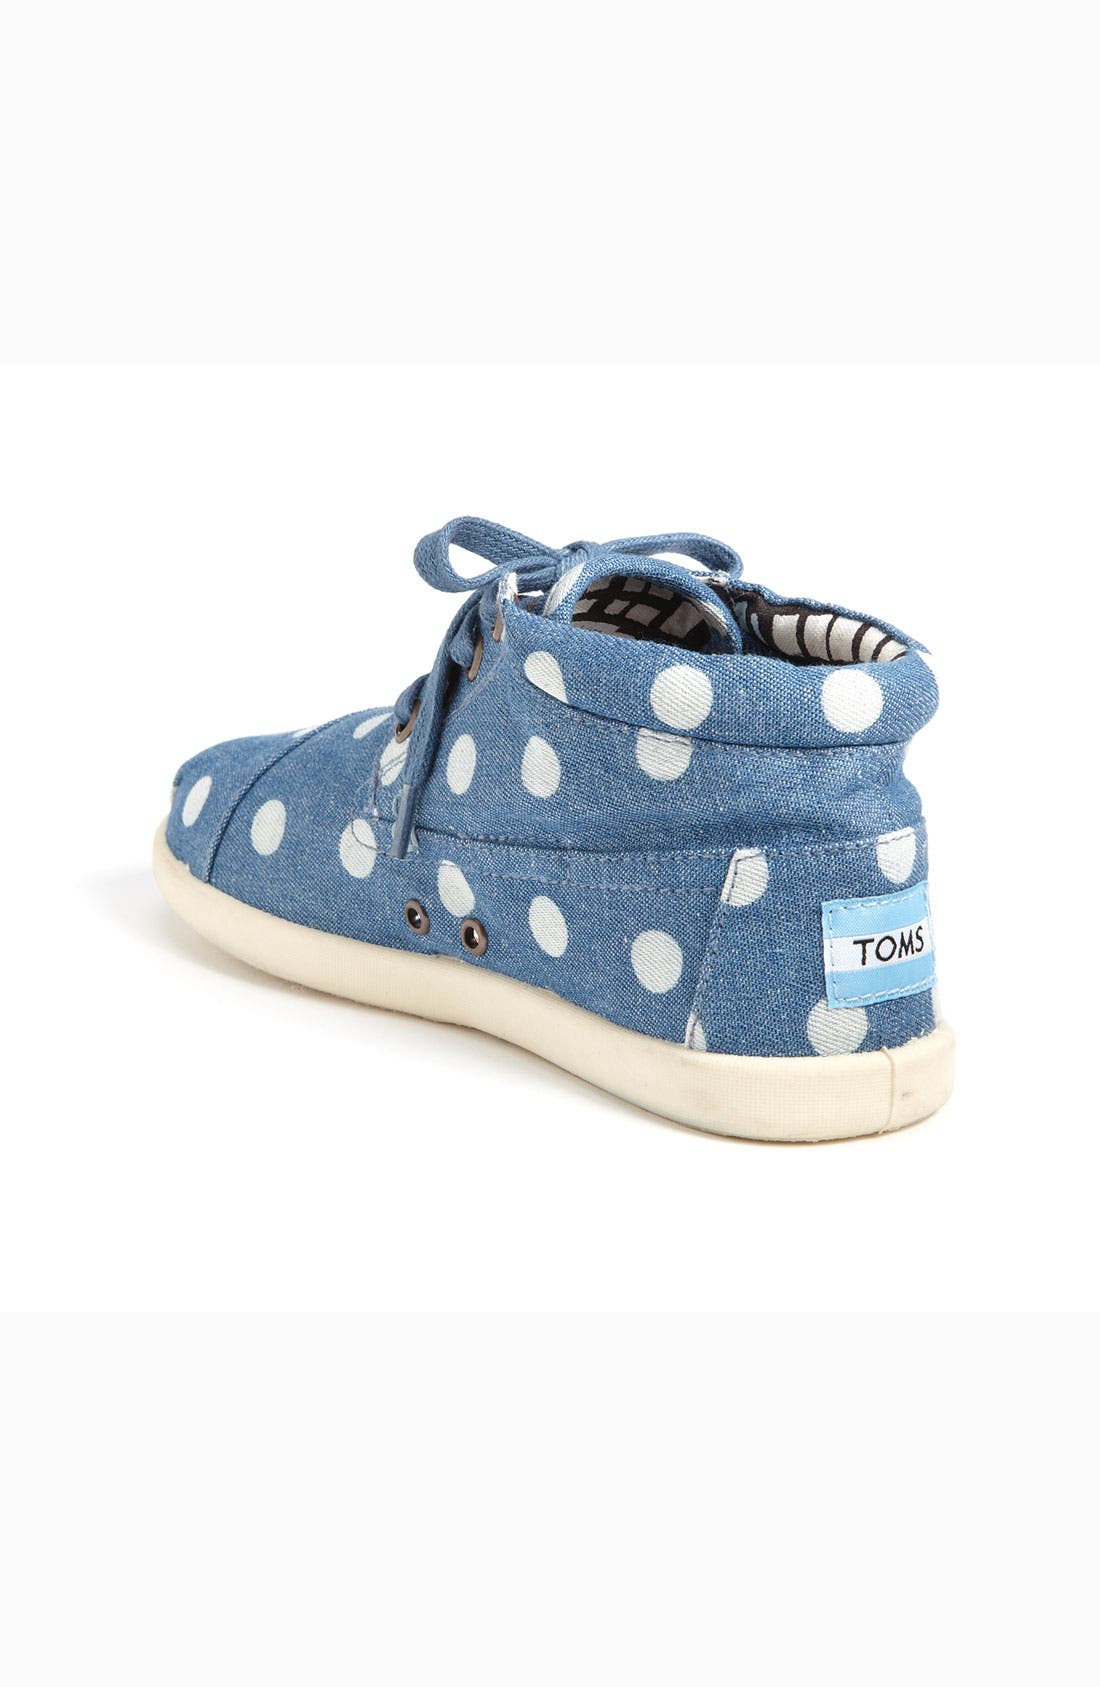 Alternate Image 2  - TOMS 'Botas Youth - Marley' Canvas Boot (Toddler, Little Kid & Big Kid)